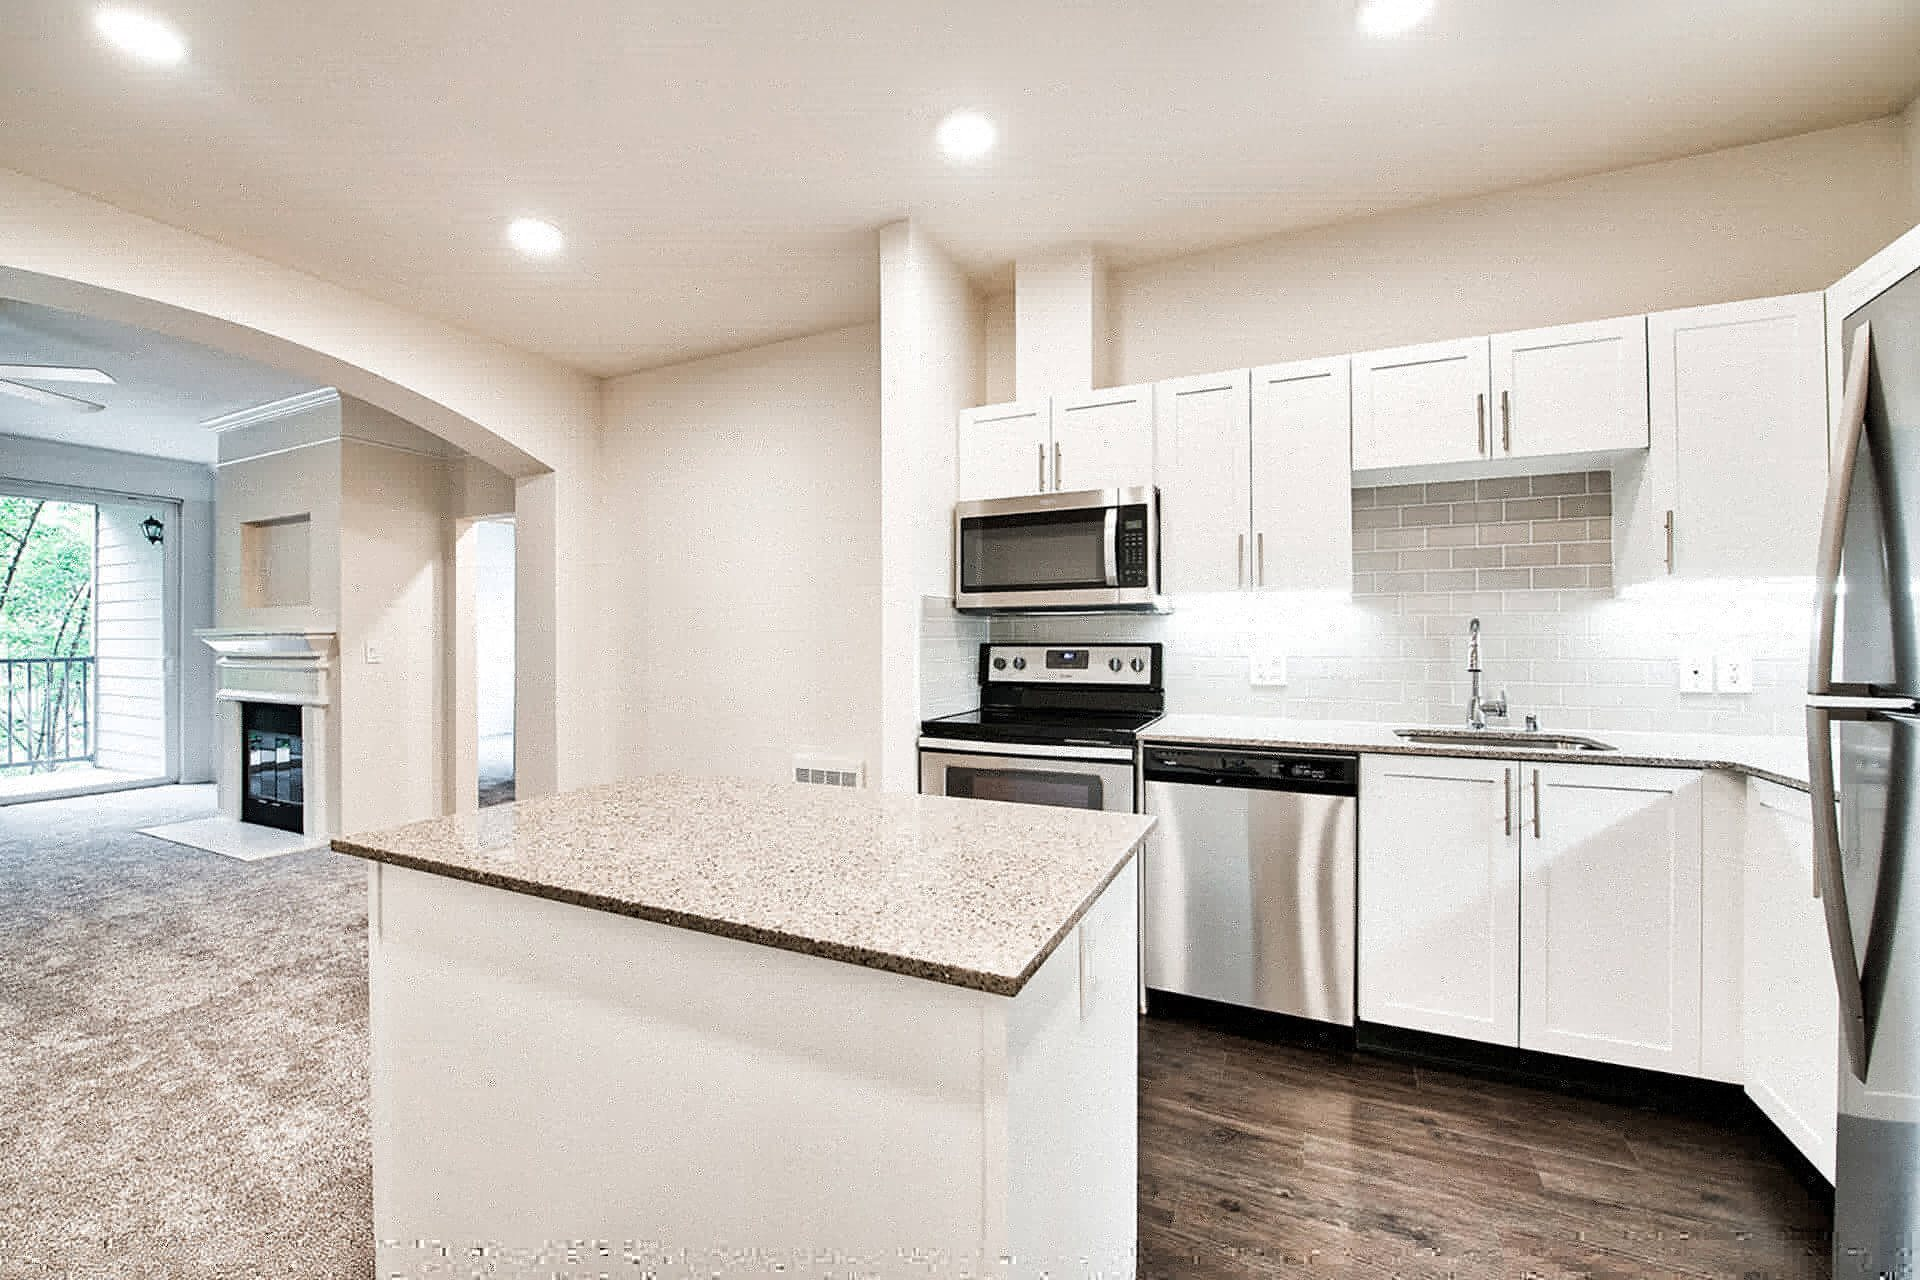 Granite Countertops in Kitchen at Reflections by Windsor, 6332 E. Lake Sammamish Parkway NE, Redmond